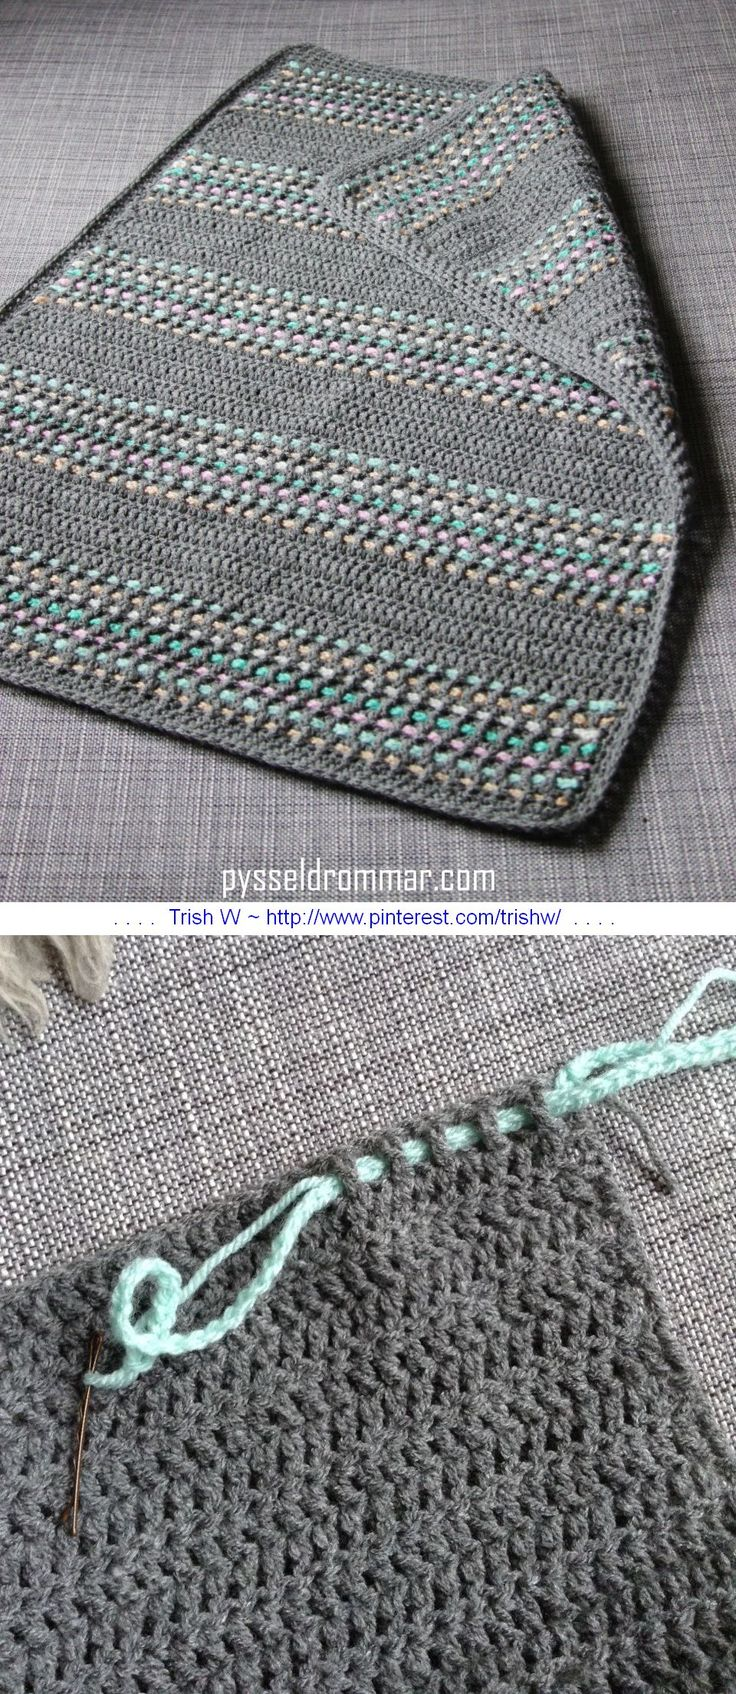 A very simple baby blanket worked in all DC, with a super-easy way to add color by weaving chains through the stitches.  Free tutorial from Pysseldrommar  - use Google translate, but photos are self-explanatory  . . . .   ღTrish W ~ http://www.pinterest.com/trishw/  . . . .   #crochet #afghan #throw